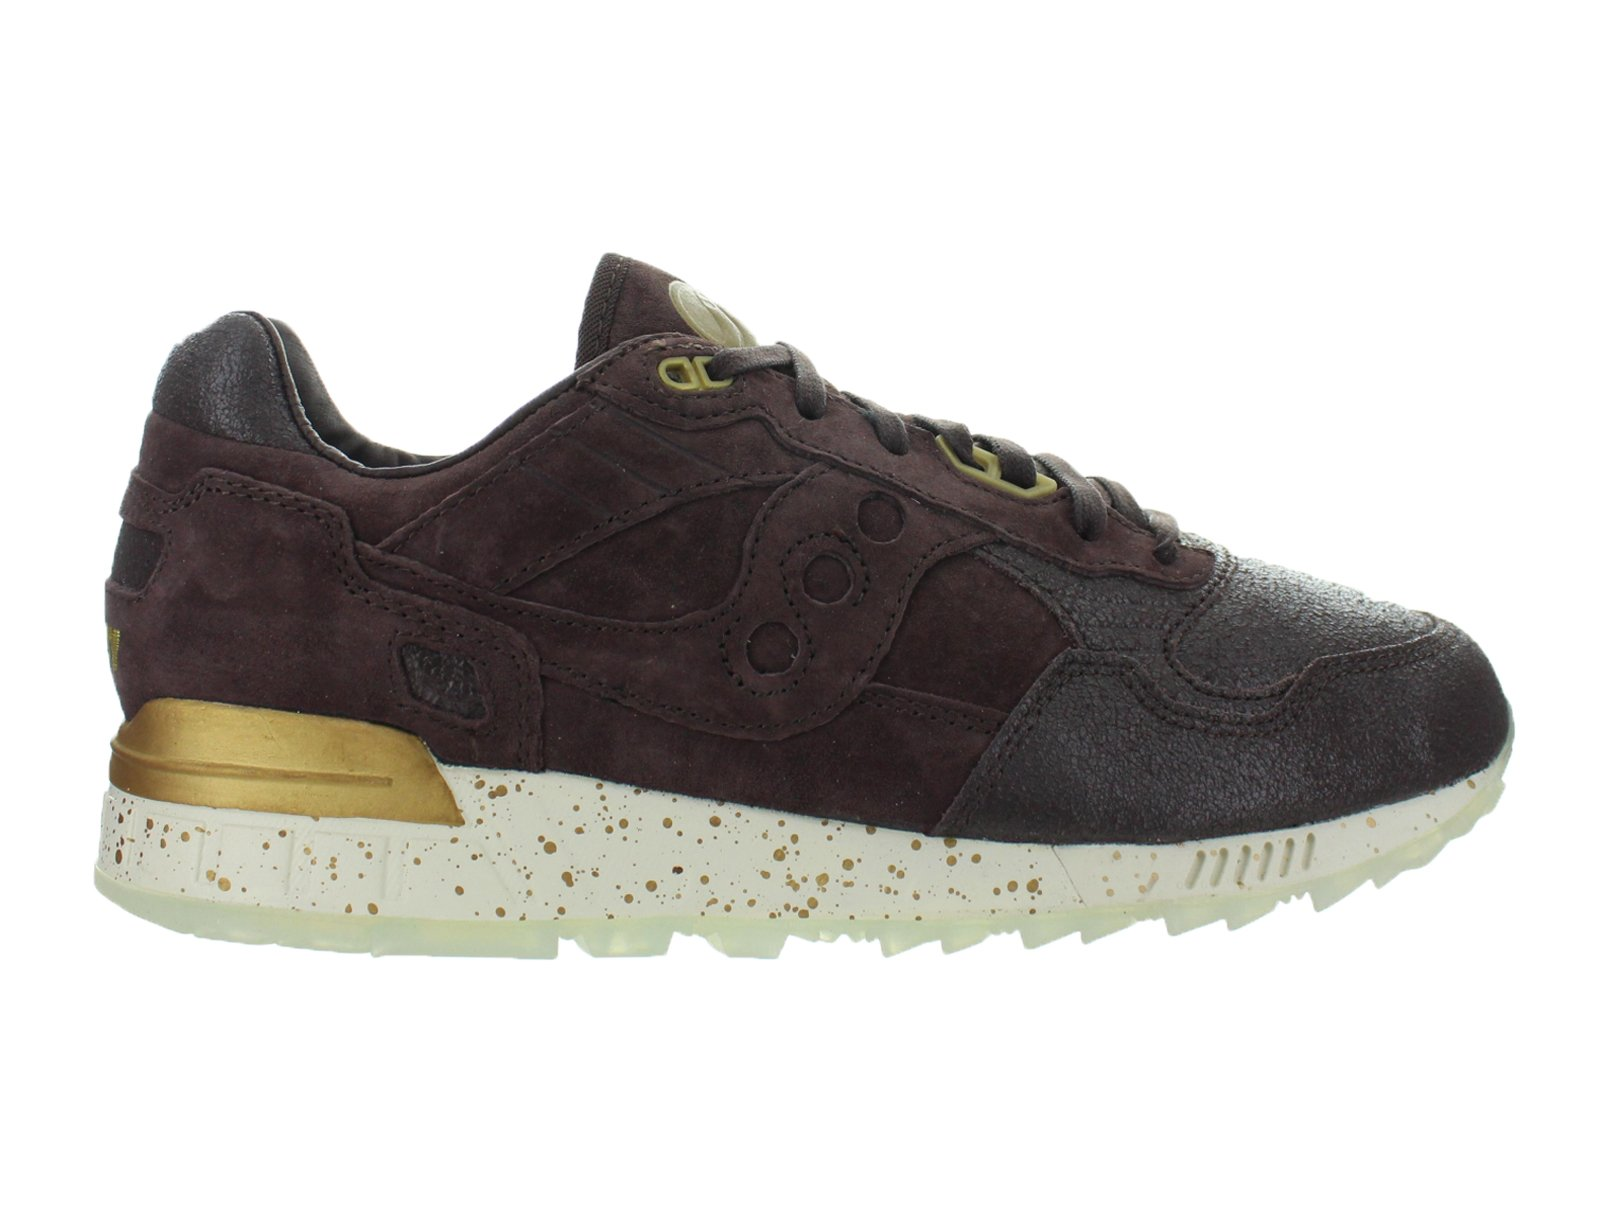 Mens Saucony Shadow 5000 Elite Chocolate Pack Brown S70311-2 by